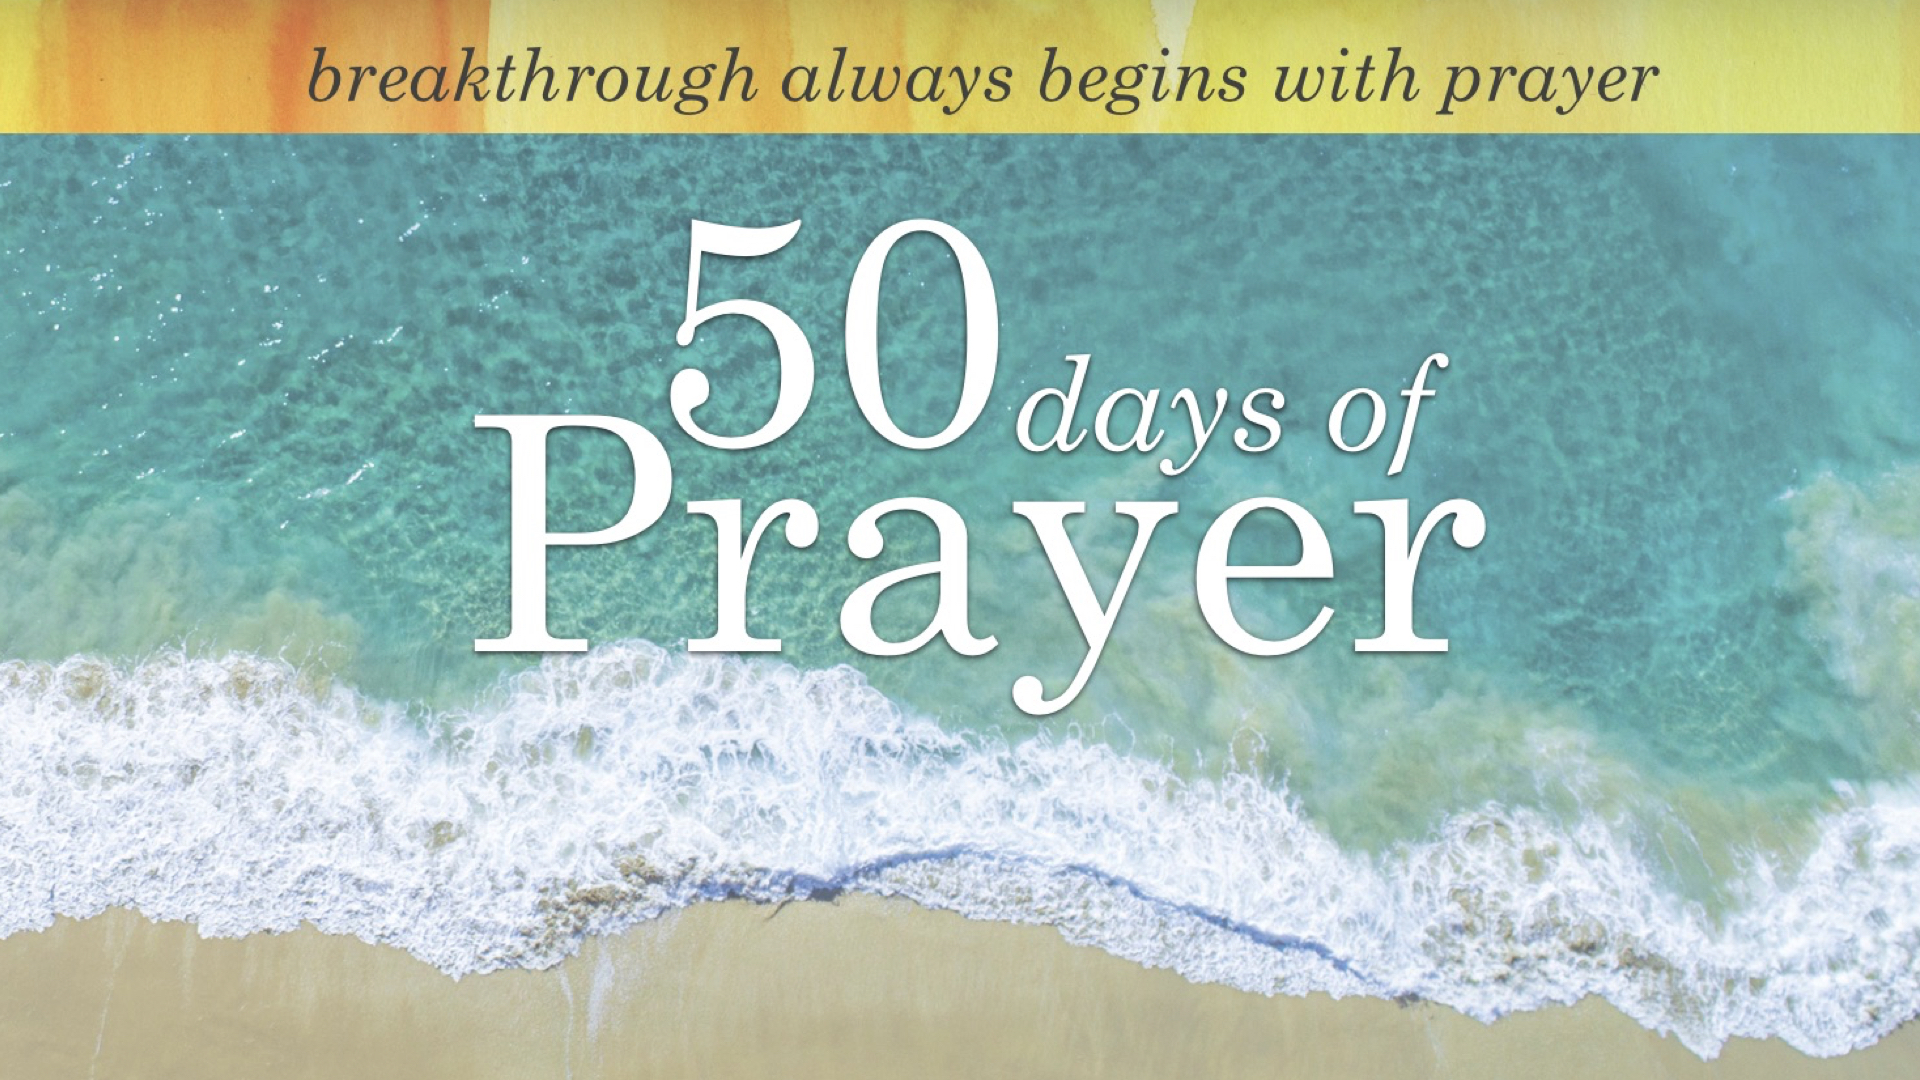 50 days of prayer 2: A BEGINNER'S GUIDE TO PRAYER - PHIL CHORLIAN | 10.14.2018 | WATCH